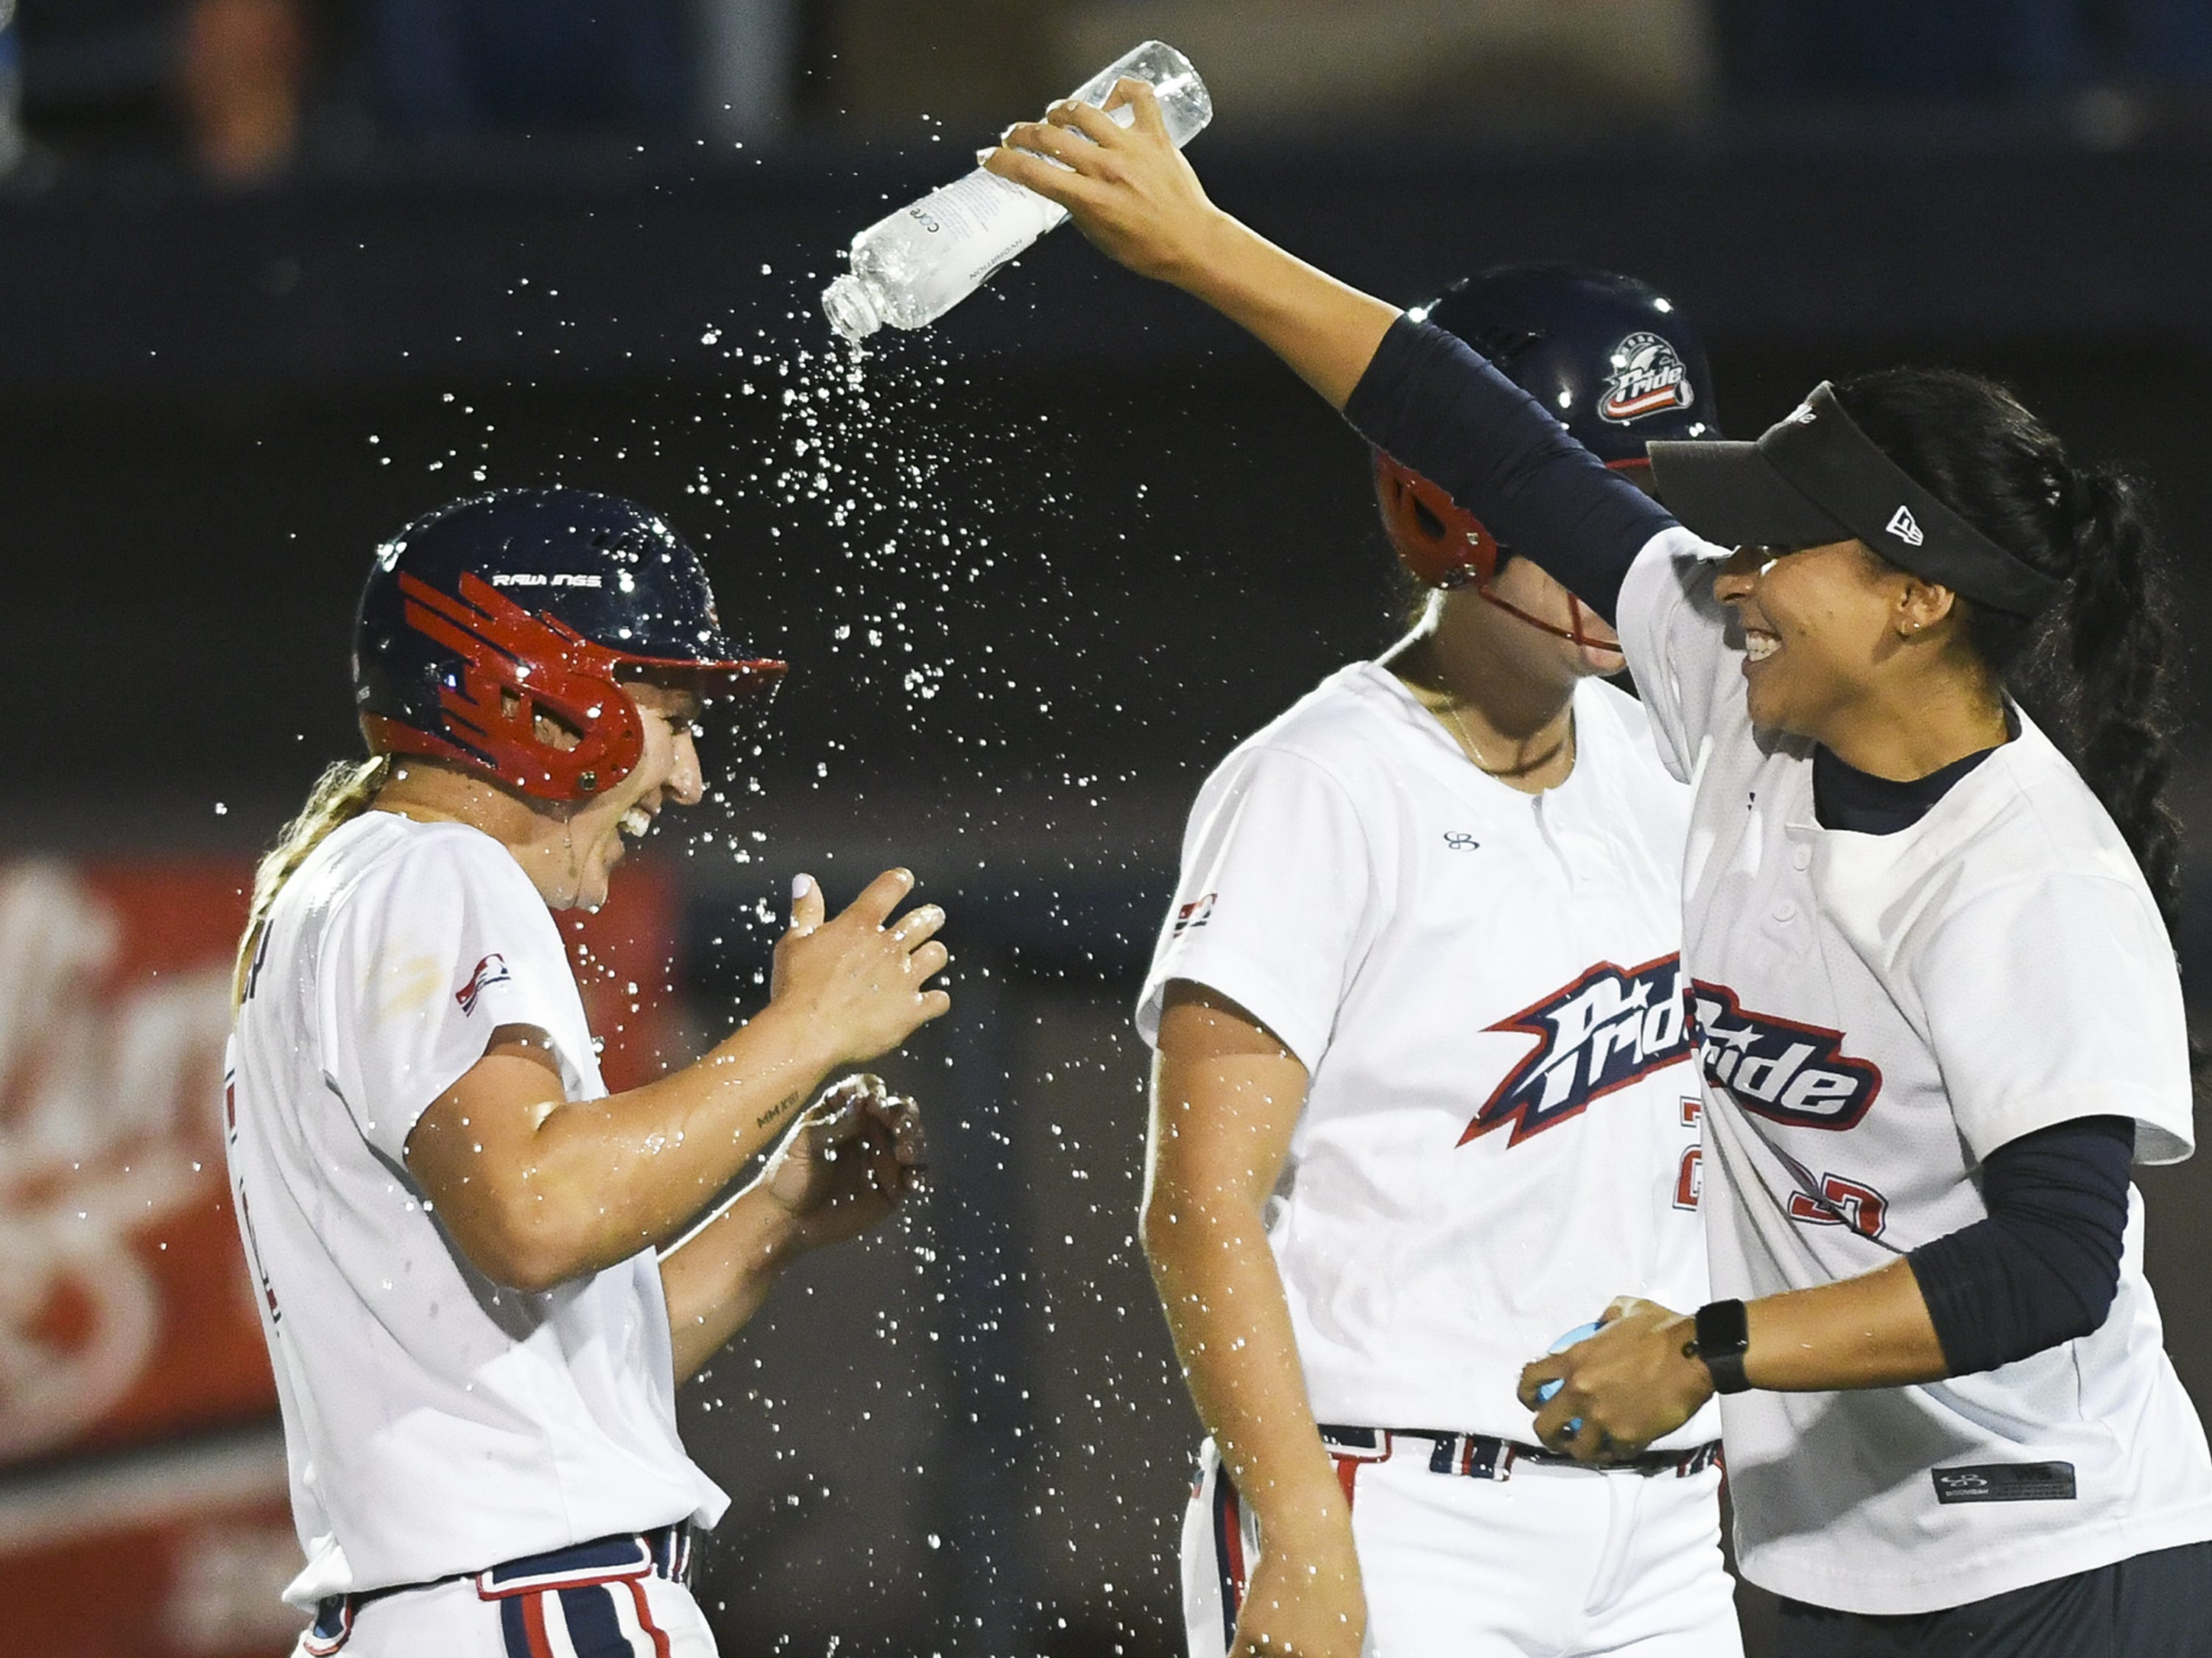 Shelby Pendley of the USSSA Pride gets a shower after drawing a bases loaded walk to score teammate and win the game against Chicago Friday in Viera.